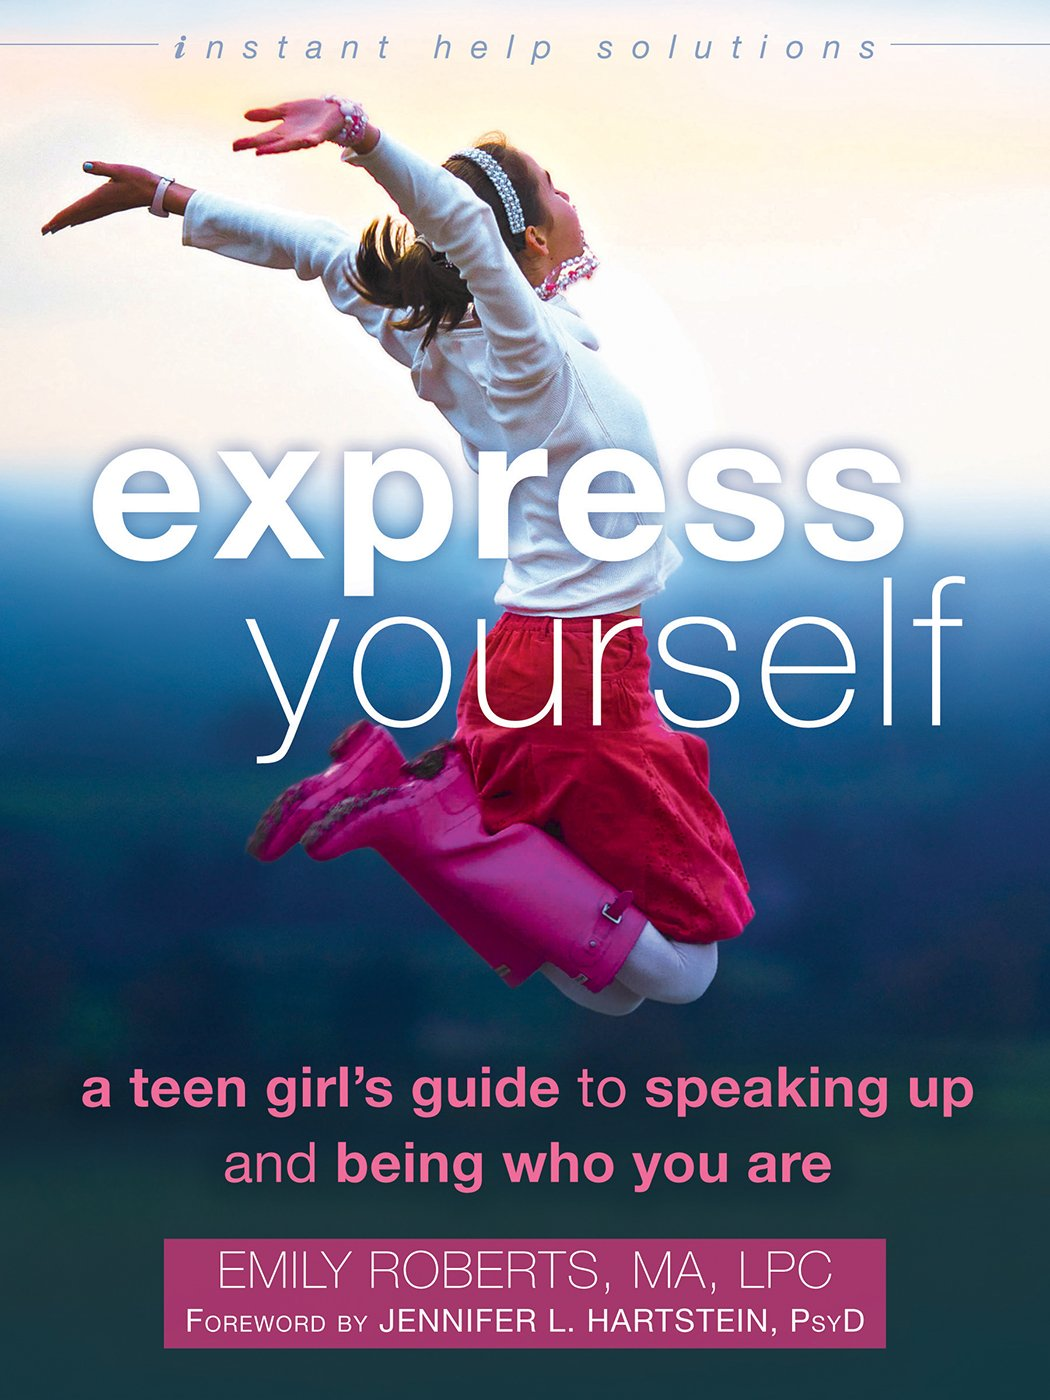 Express Yourself: A Teen Girl's Guide to Speaking Up and Being Who You Are (The Instant Help Solutions Series) (English Edition)